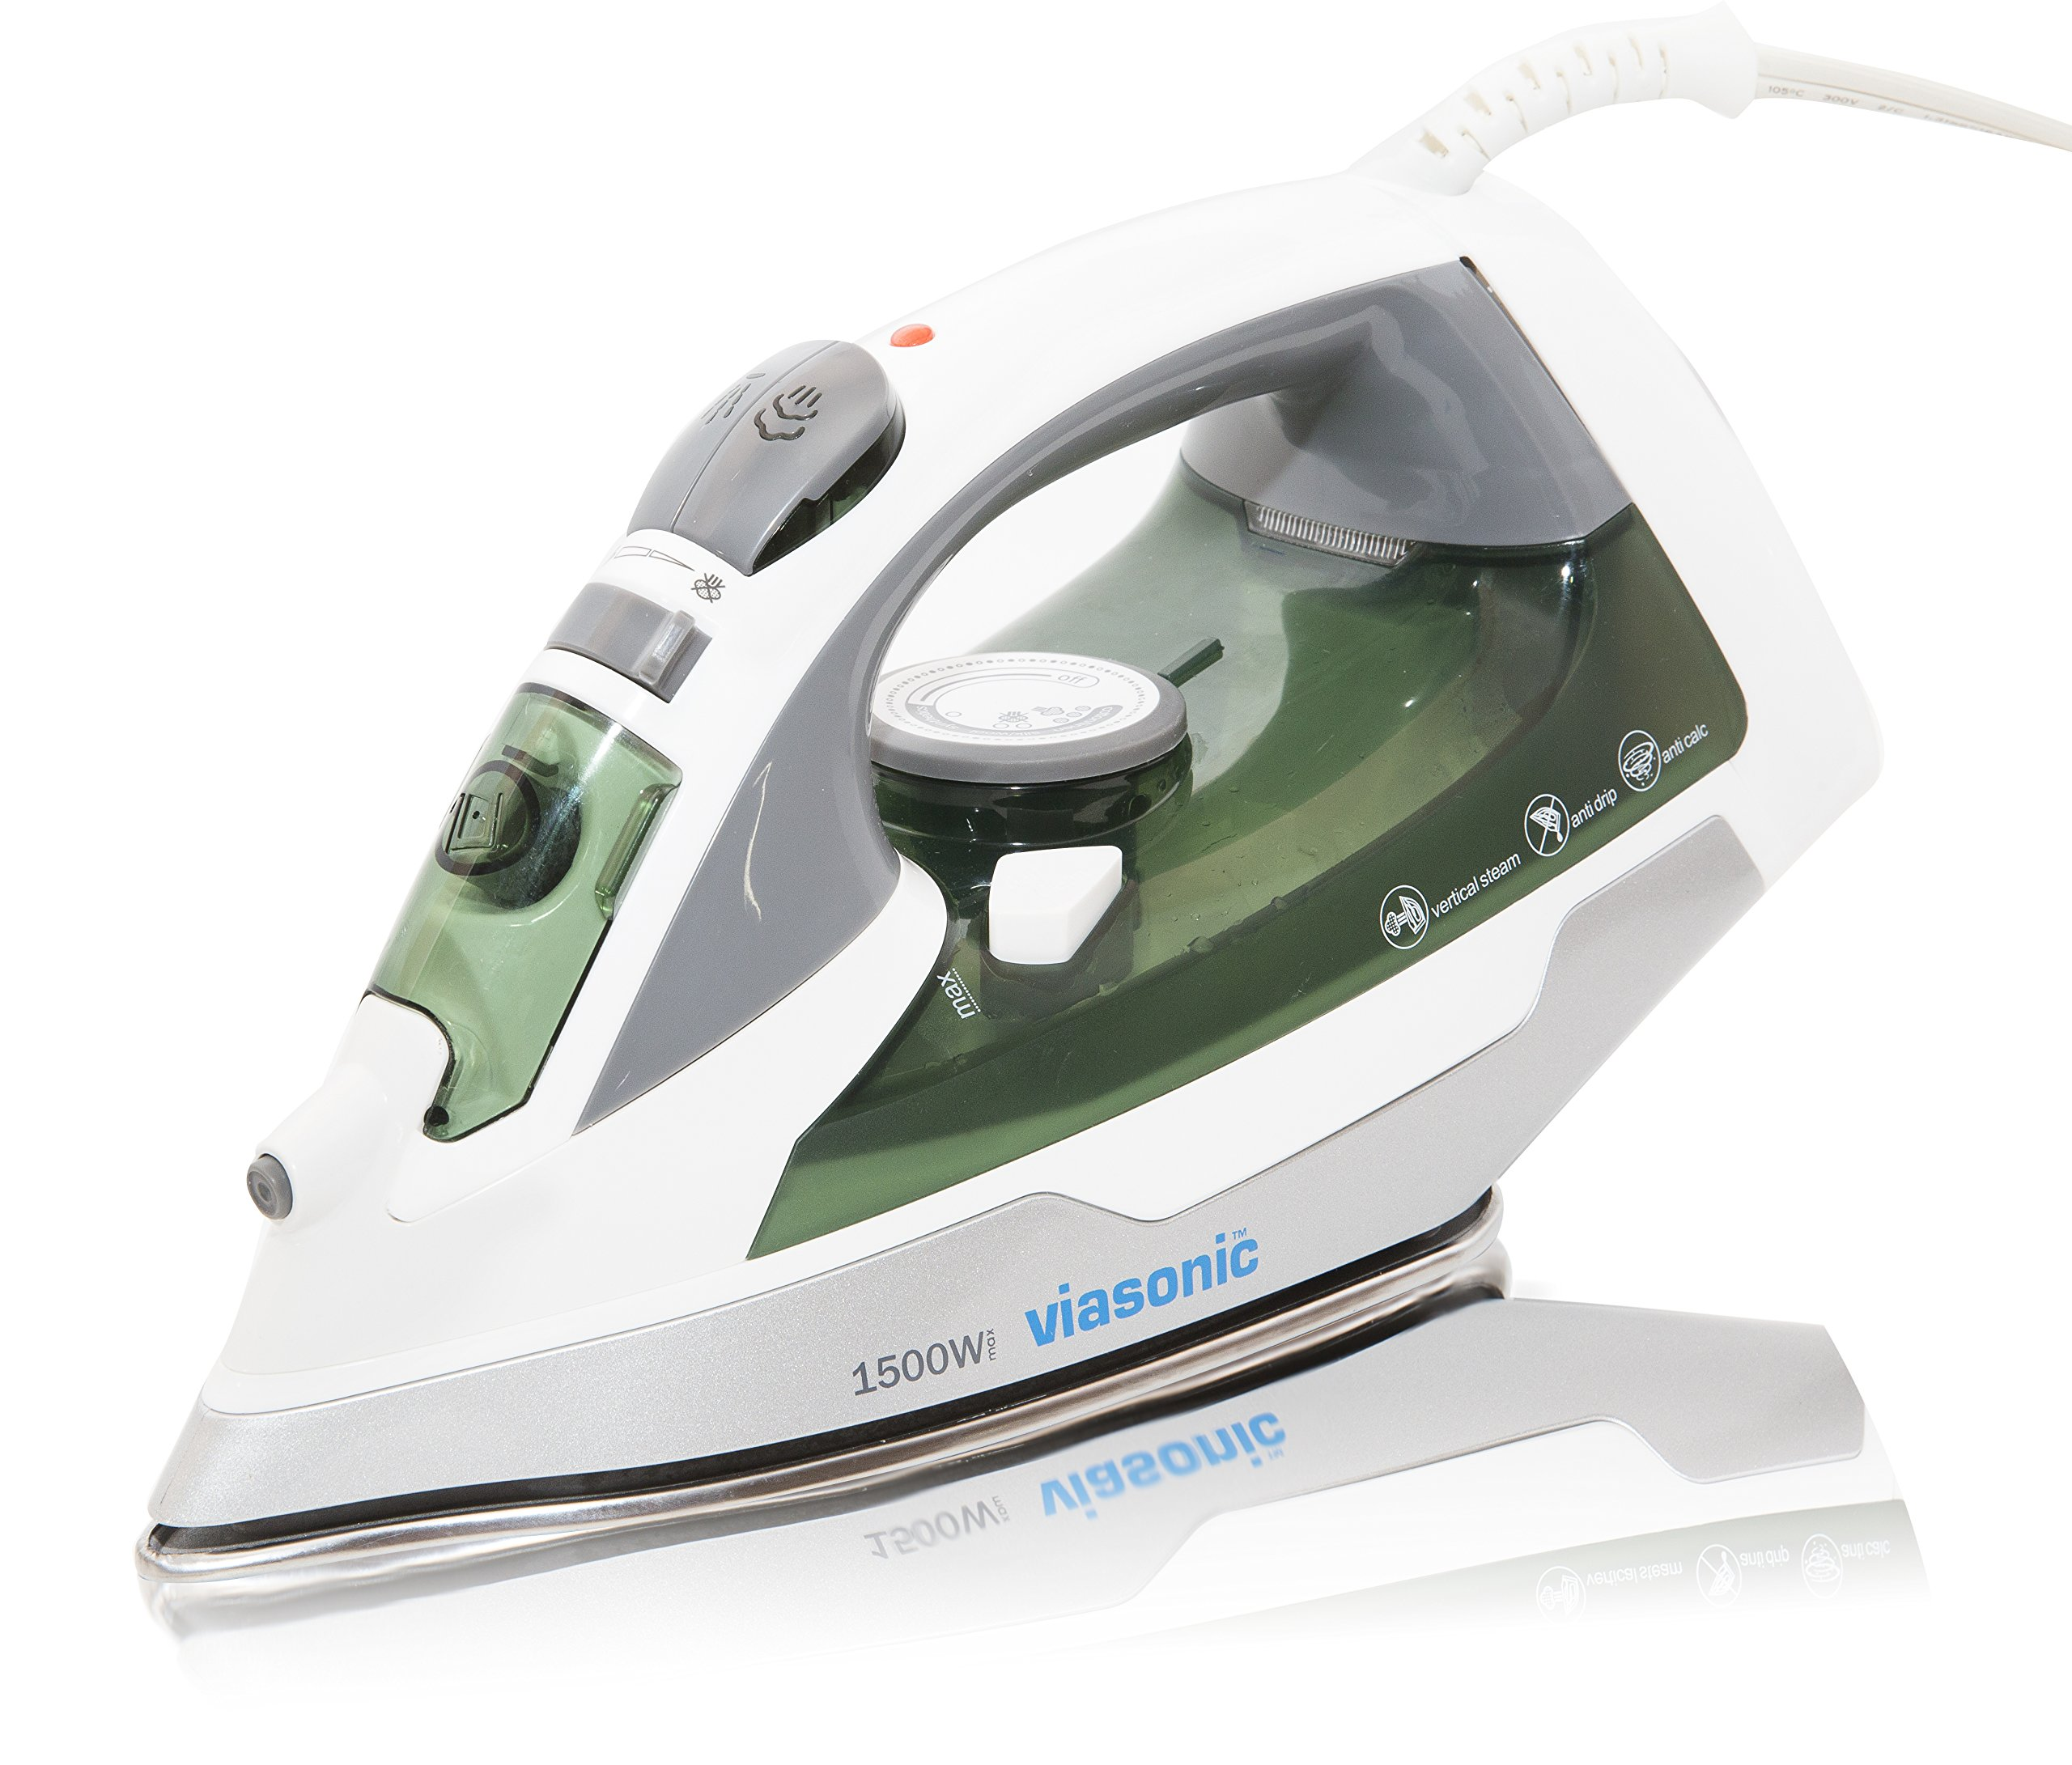 Viasonic Elite Steam Iron 1500W, Anti-Drip & Self-Cleaning, Anti-Calcium, Vertical Steam - Stainless Steel Soleplate - XL 300ML Tank - Steam, Spray, Dry Functions - ETL Listed, by Unity